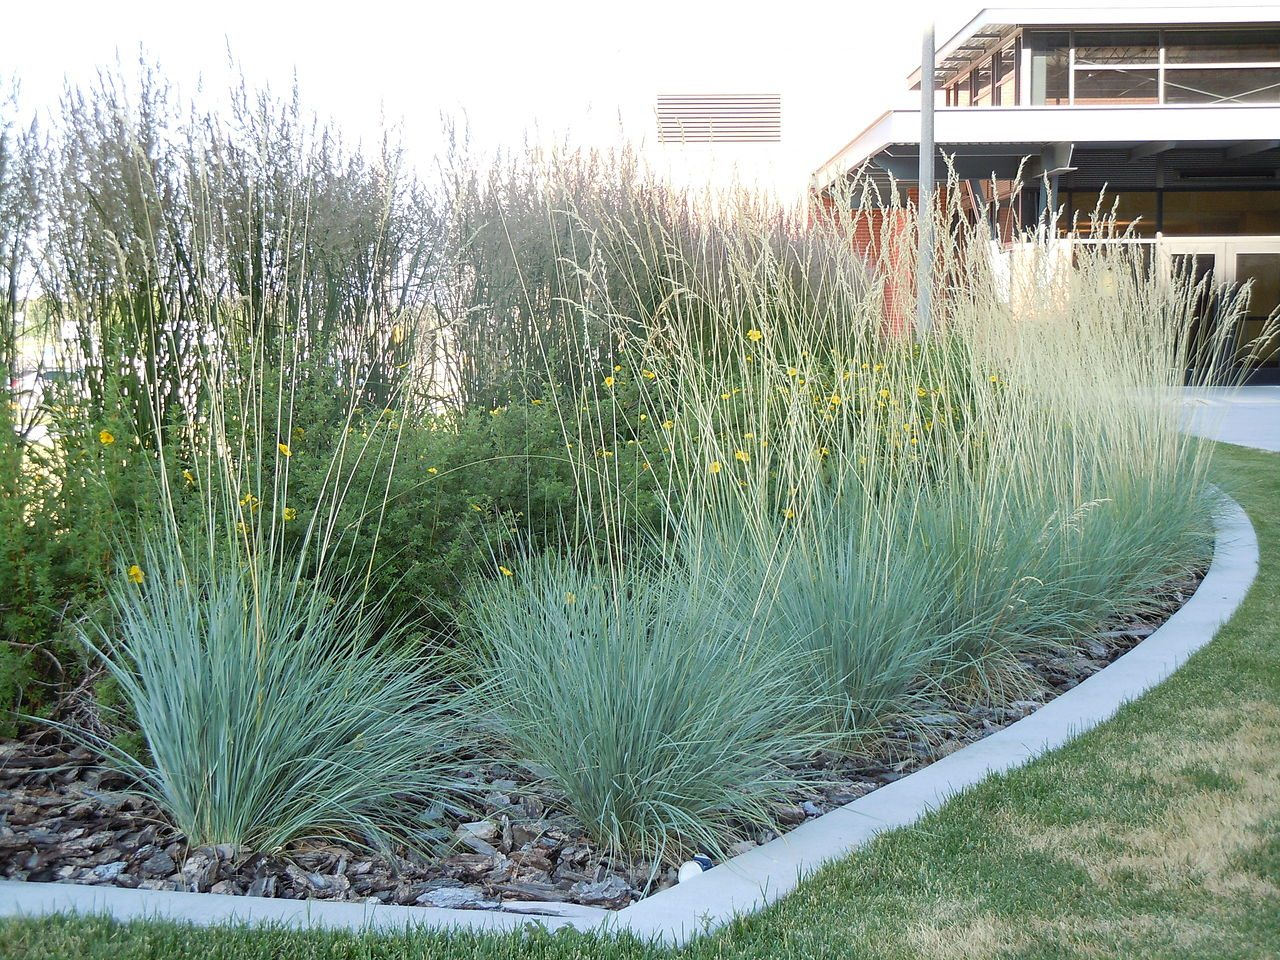 Blue oat grass care tips for growing ornamental blue oat for Small blue ornamental grass